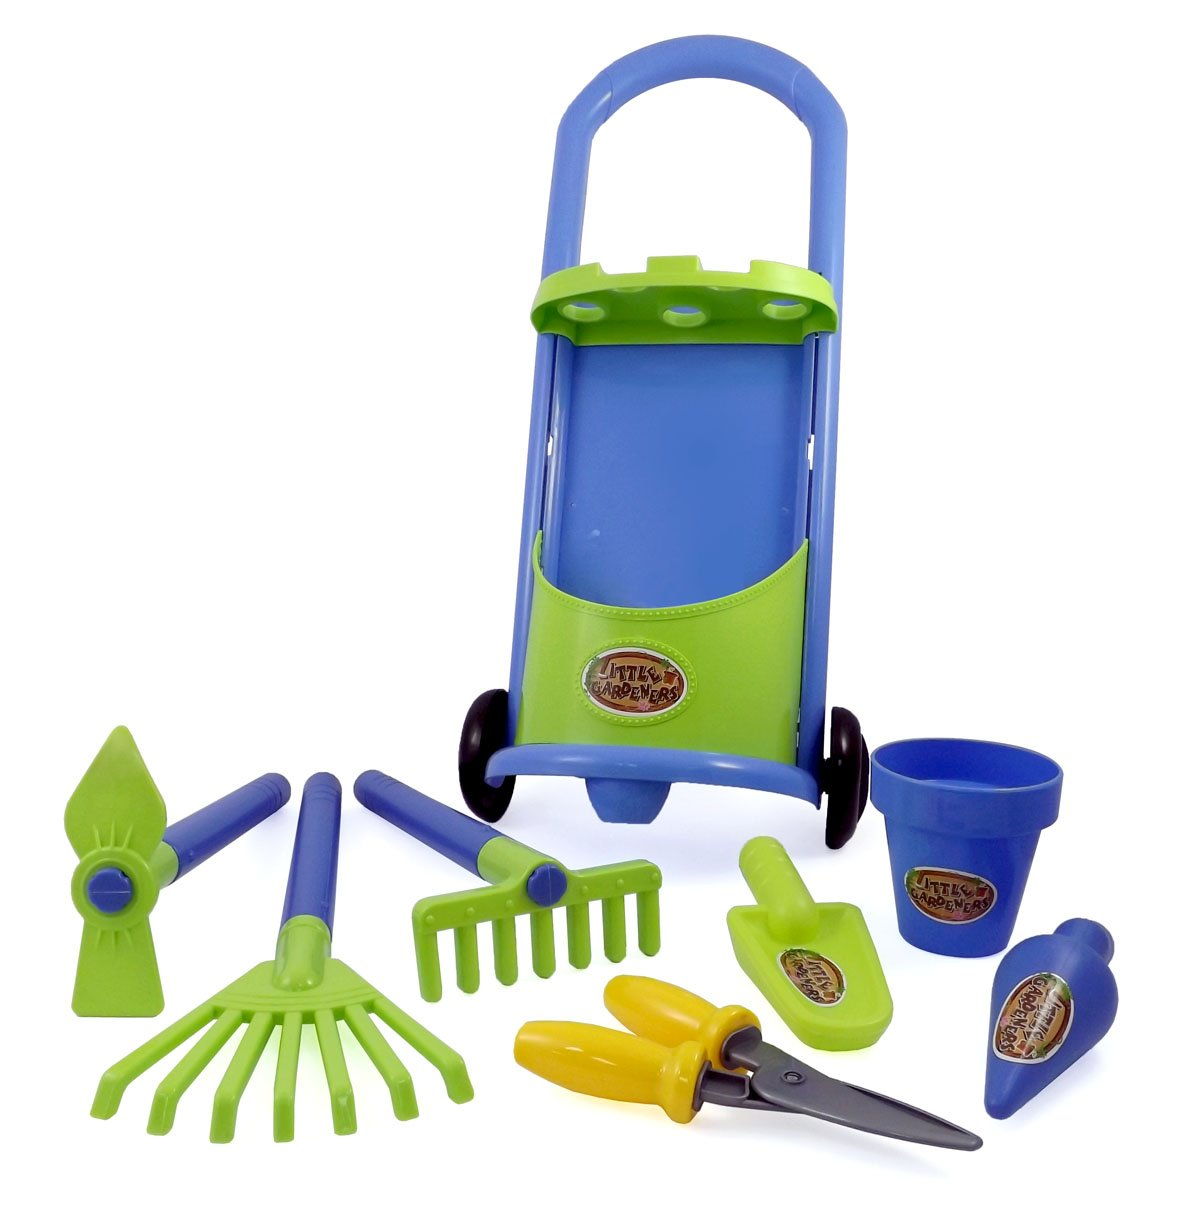 Kids garden trolley set children game outdoor fun play toy for Gardening tools for 3 year old